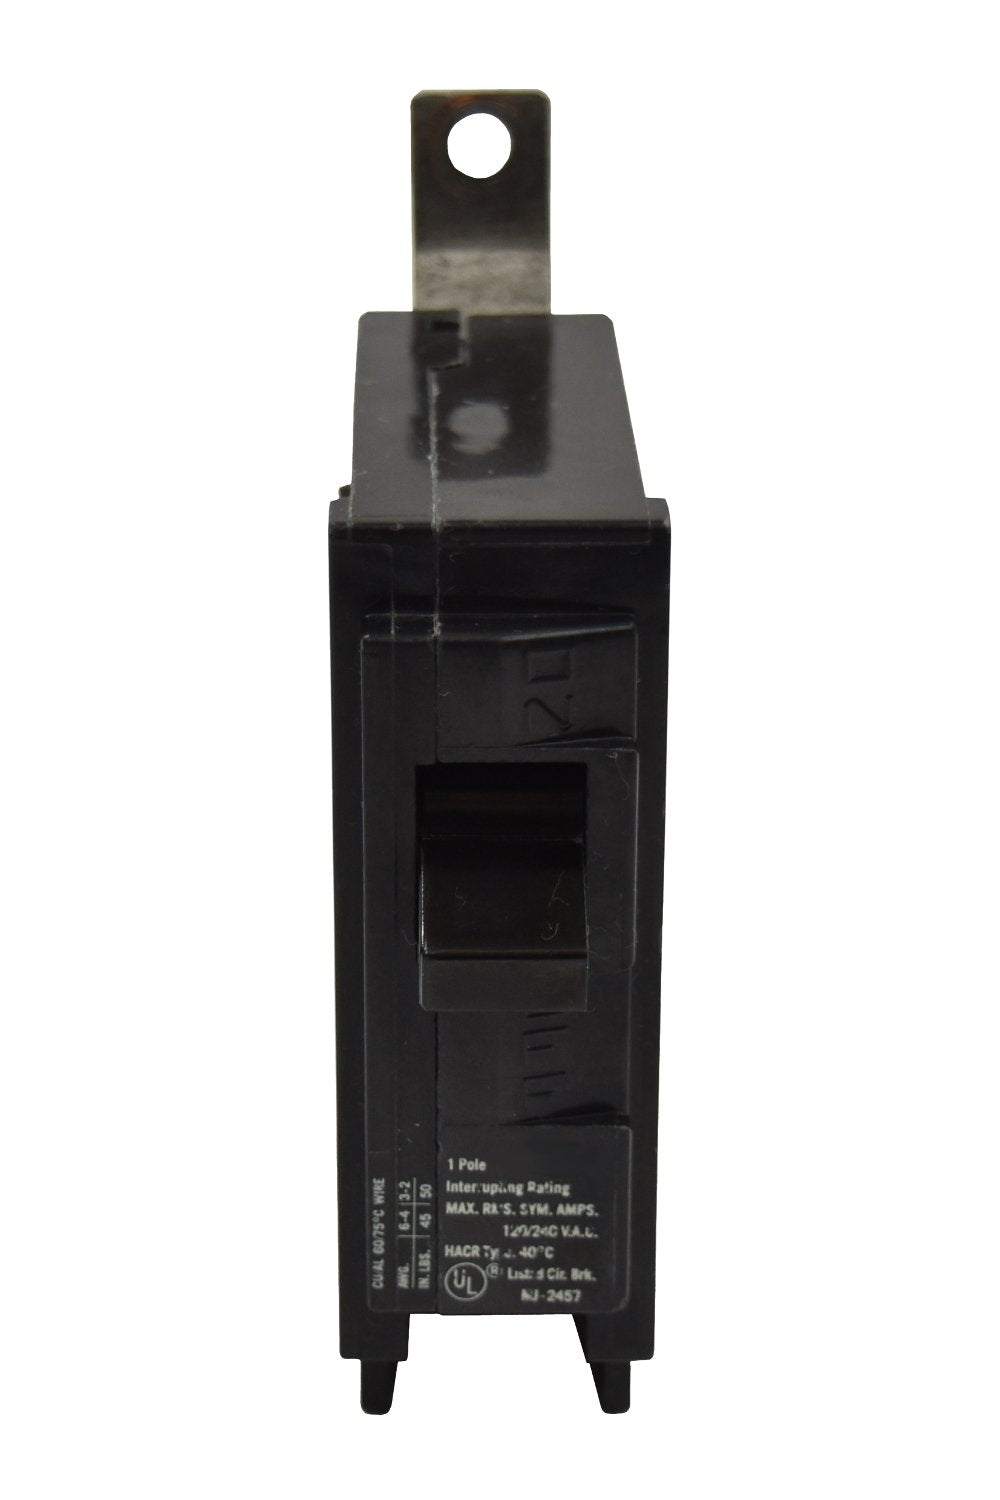 Siemens B135 Circuit Breakers